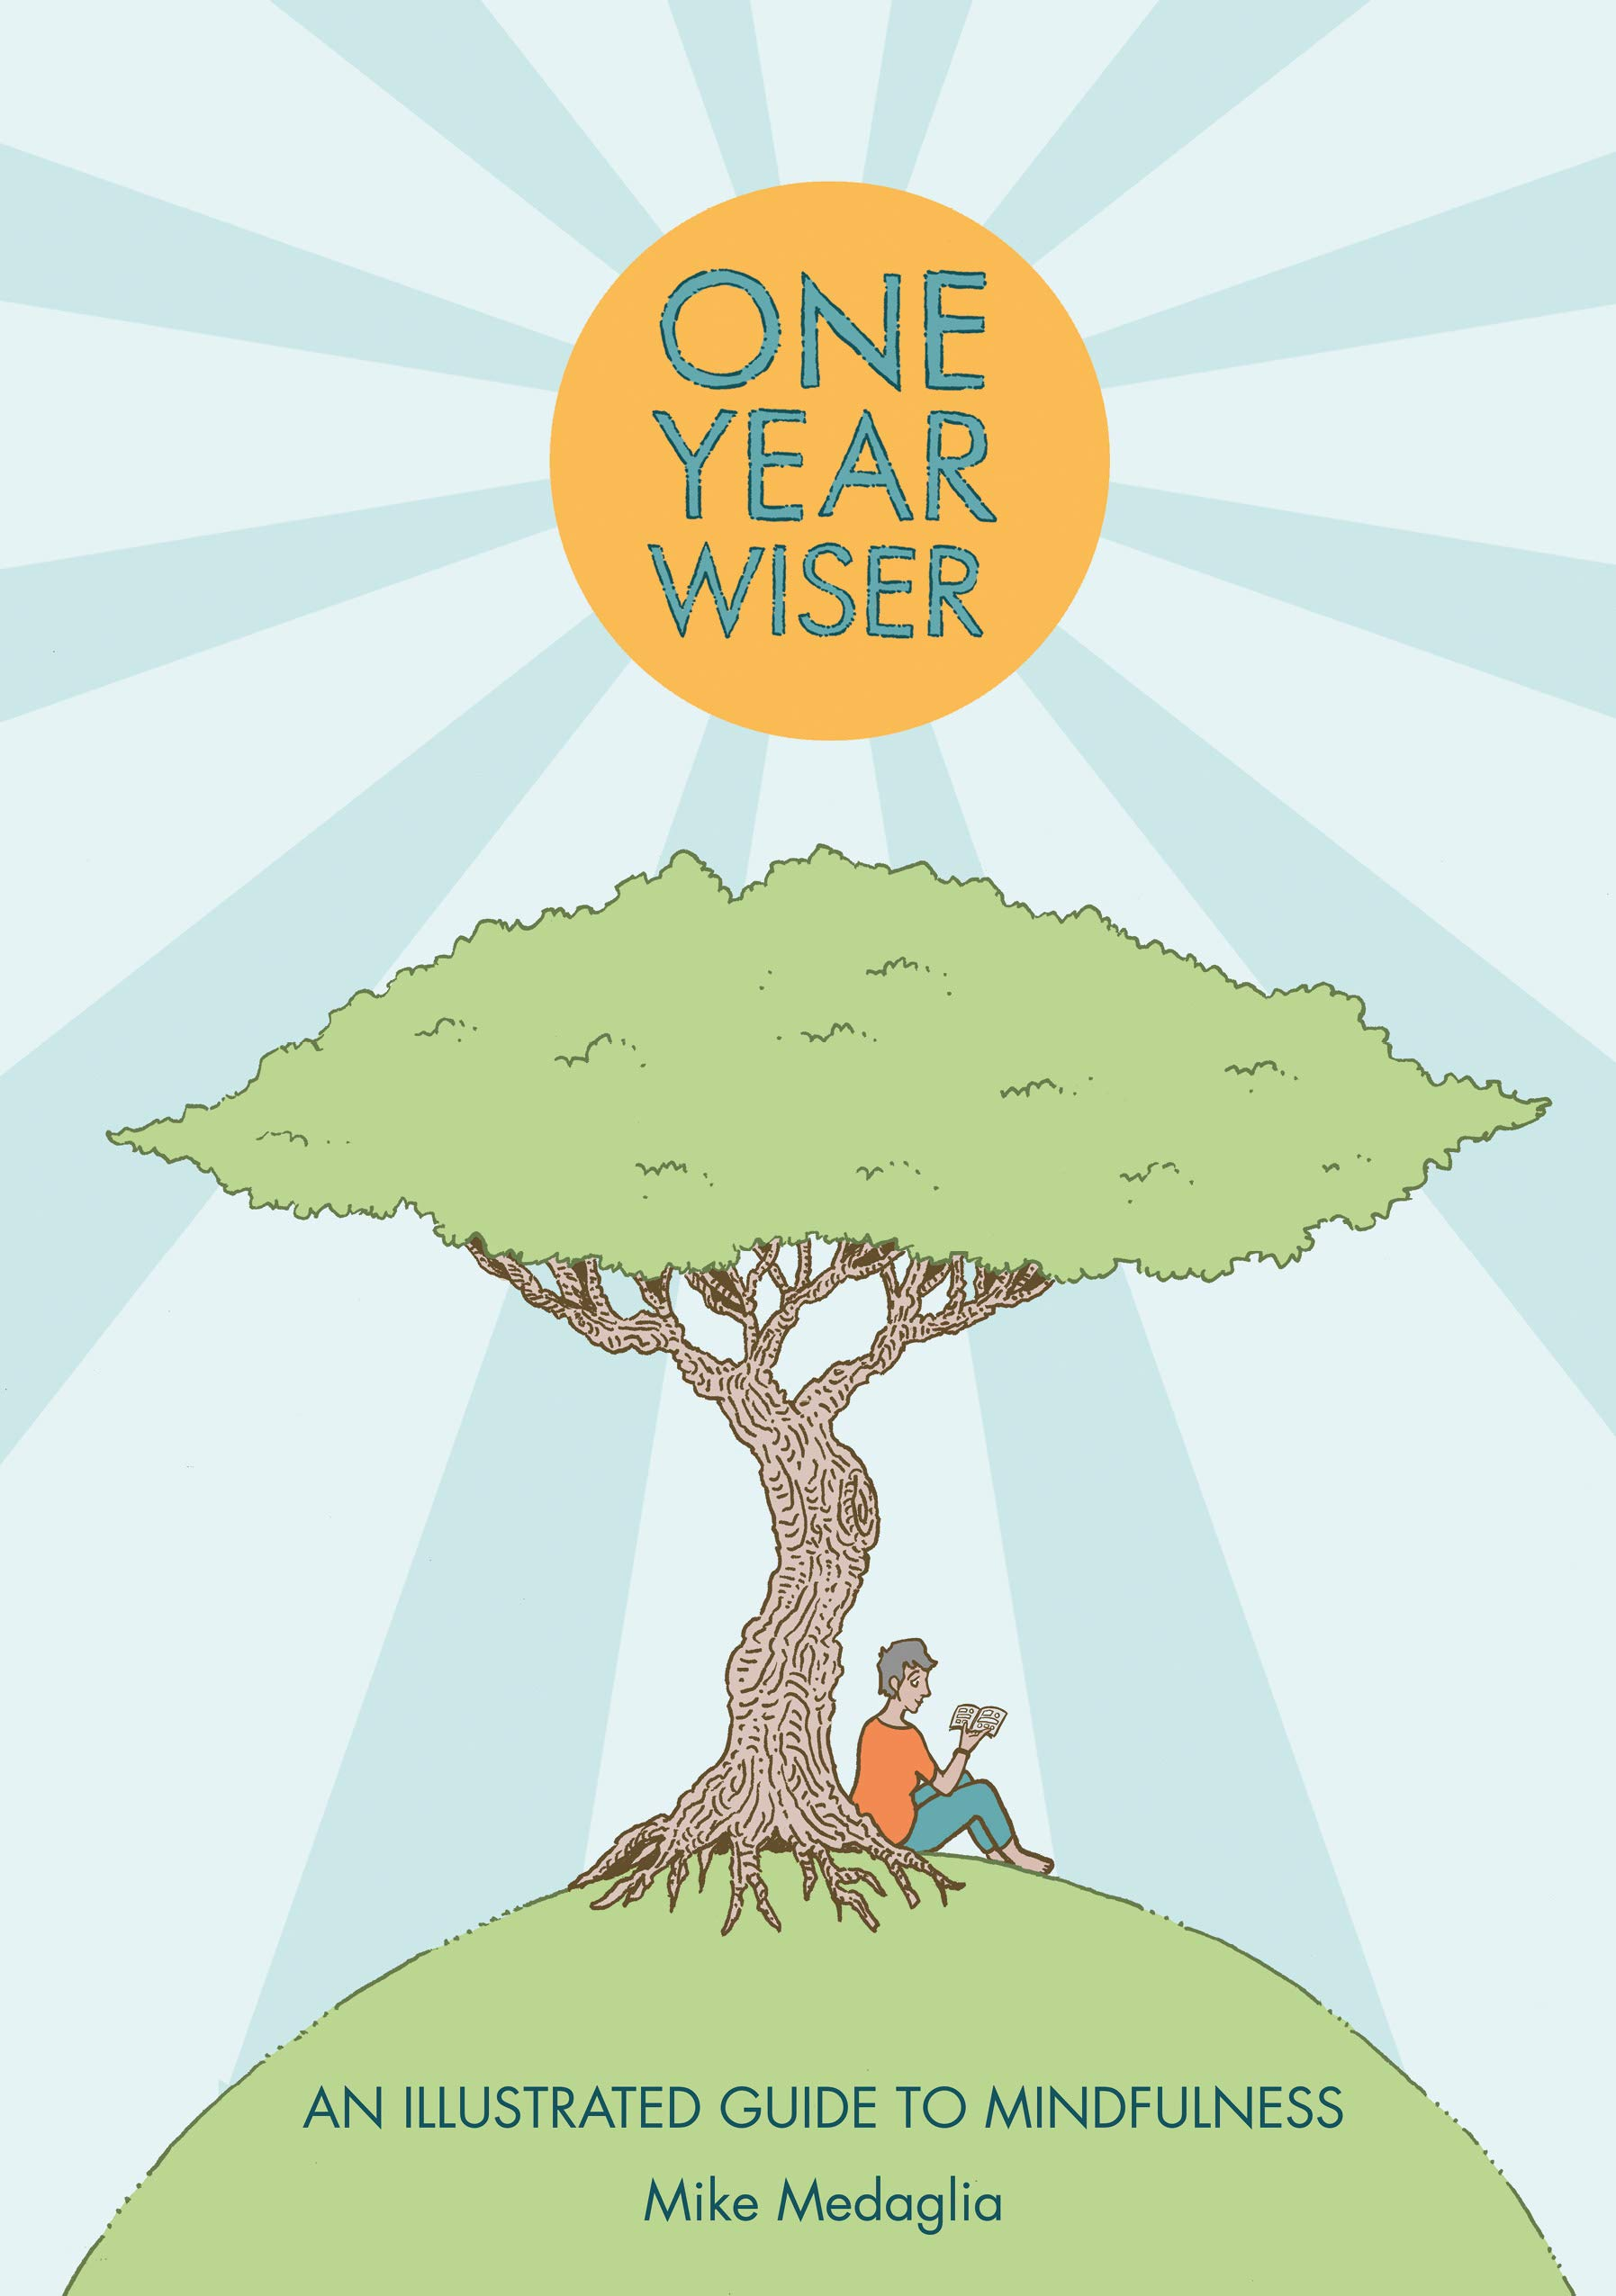 One Year Wiser: An Illustrated Guide to Mindfulness (Non-Fiction - SelfMadeHero)